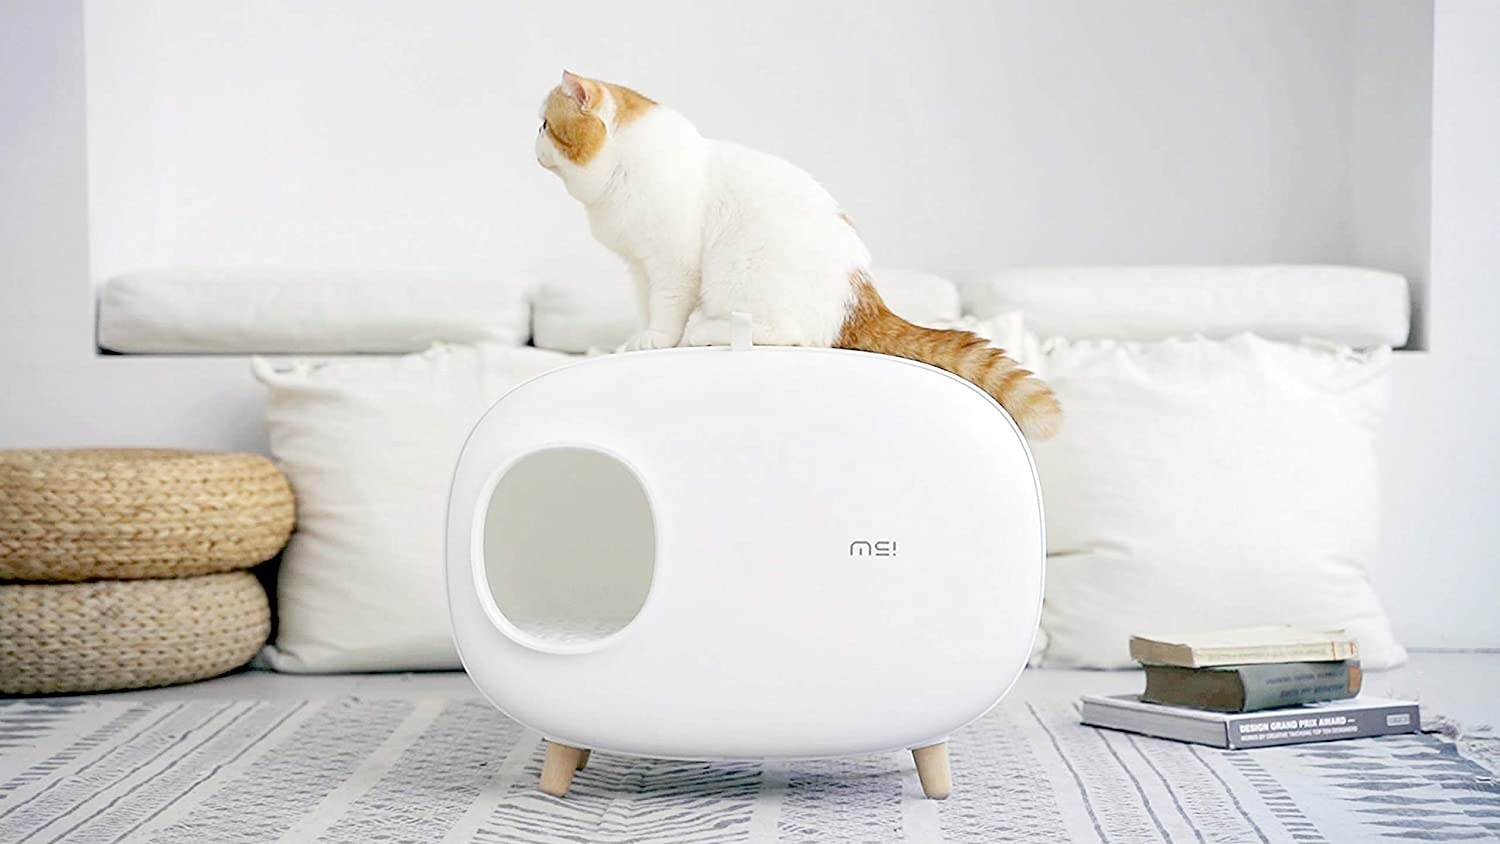 Minimalist covered litter box with round edges and mid-century-modern wooden legs